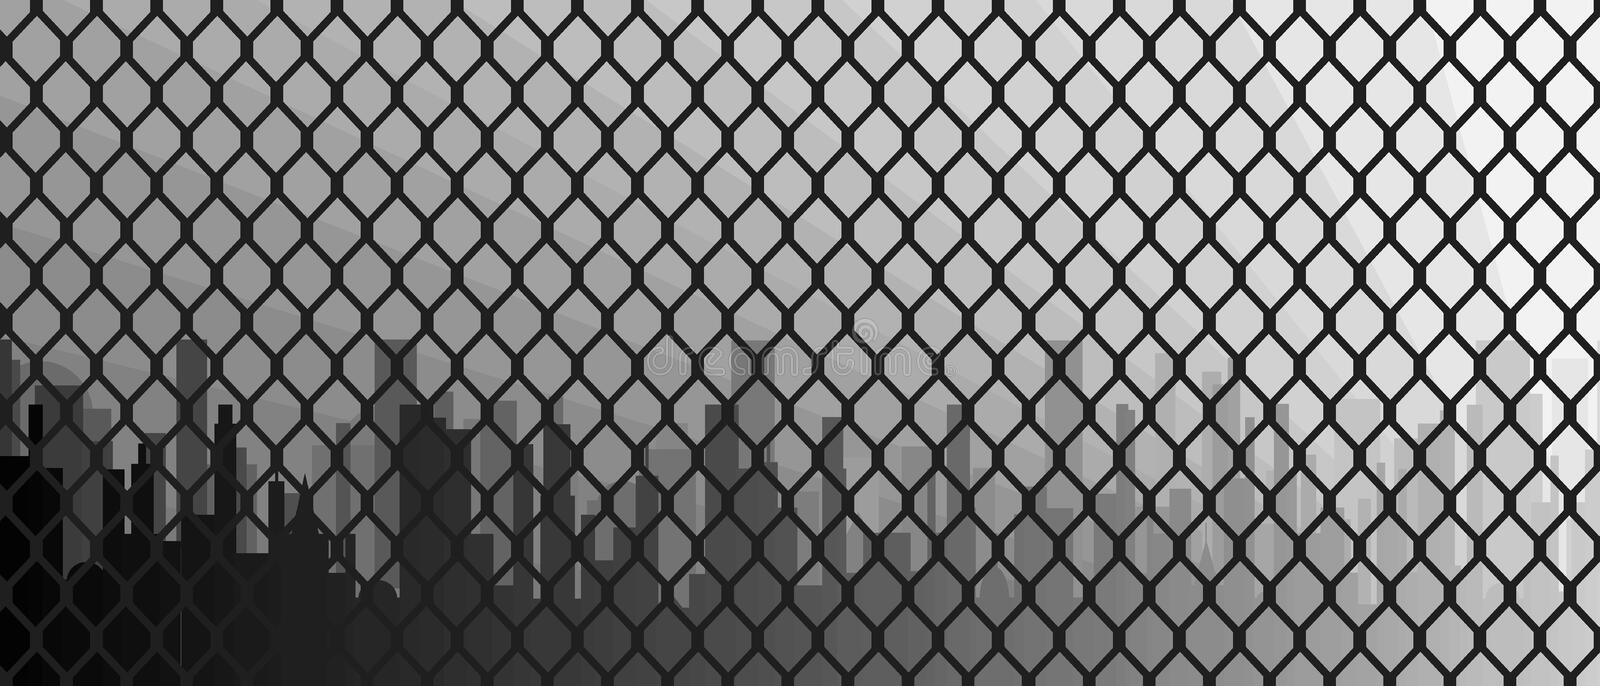 Chain Link Fence With City Skyline Background royalty free illustration